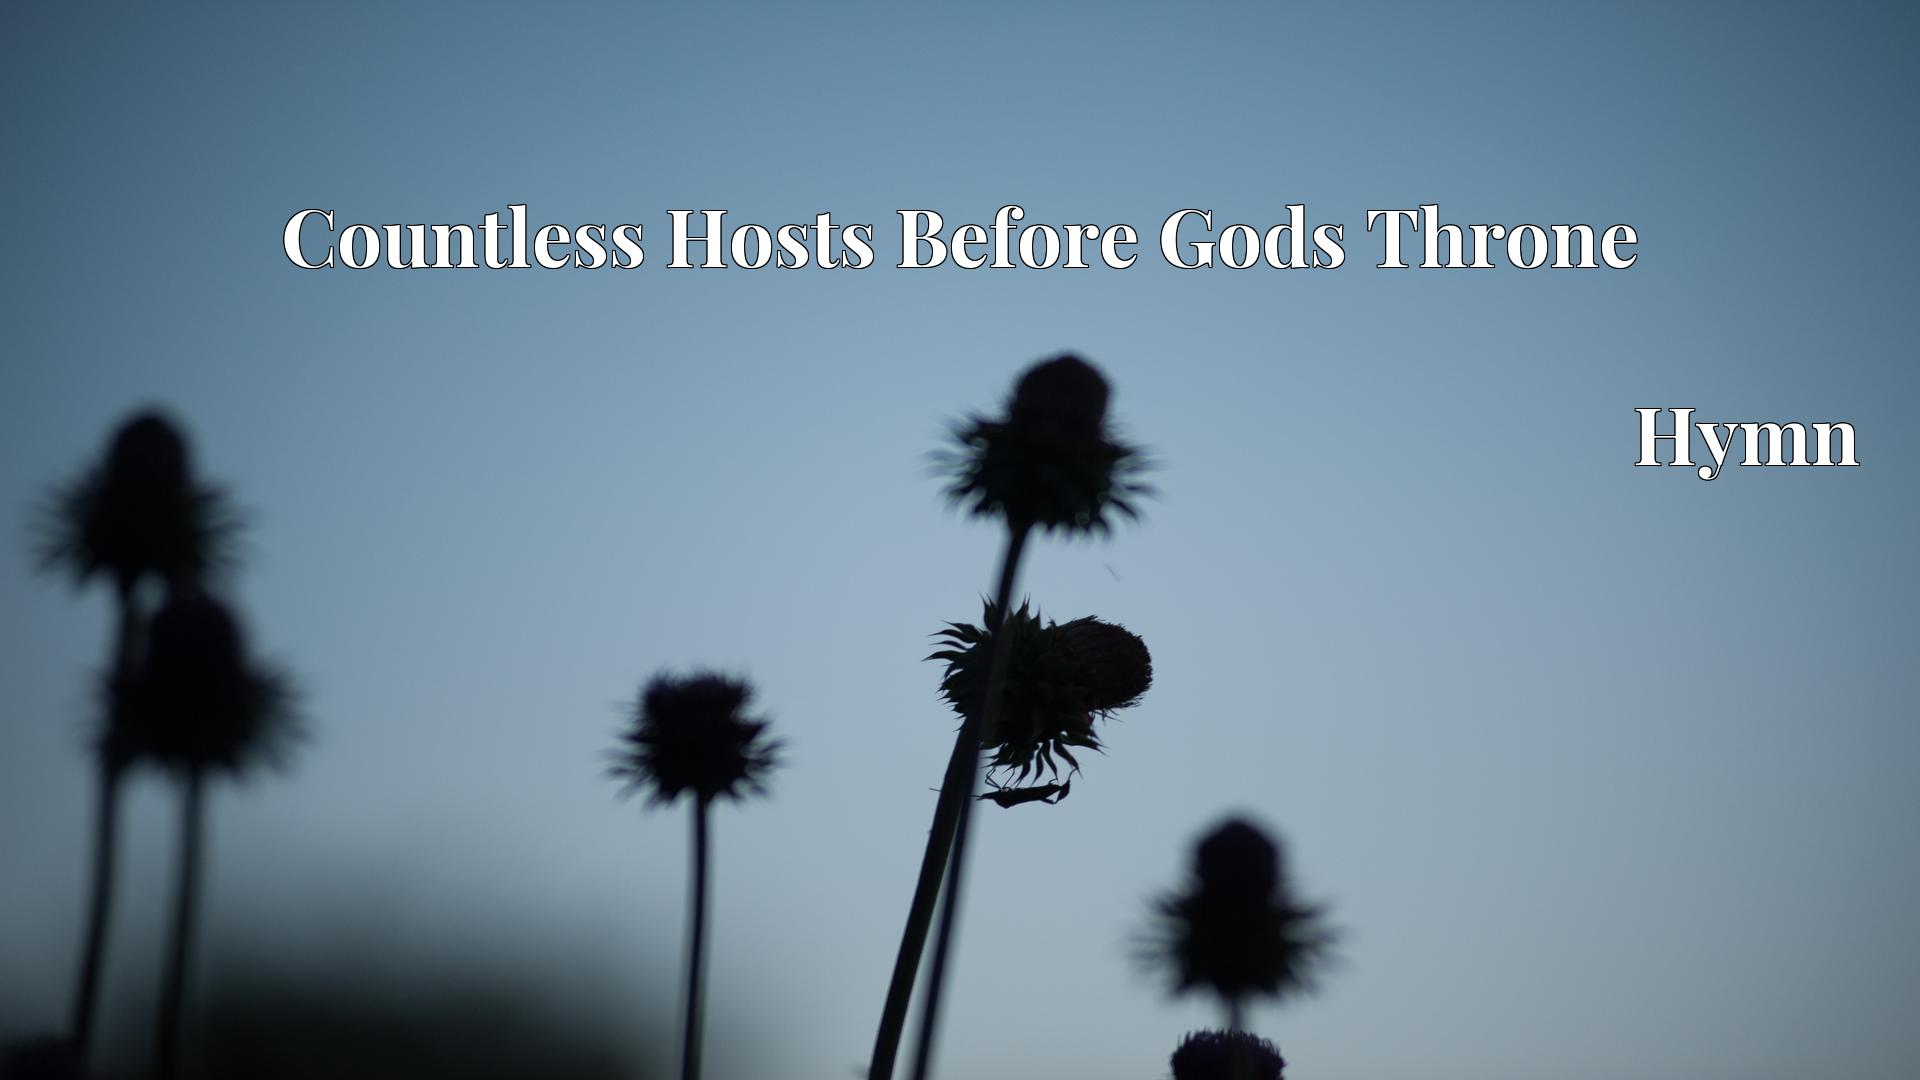 Countless Hosts Before Gods Throne - Hymn